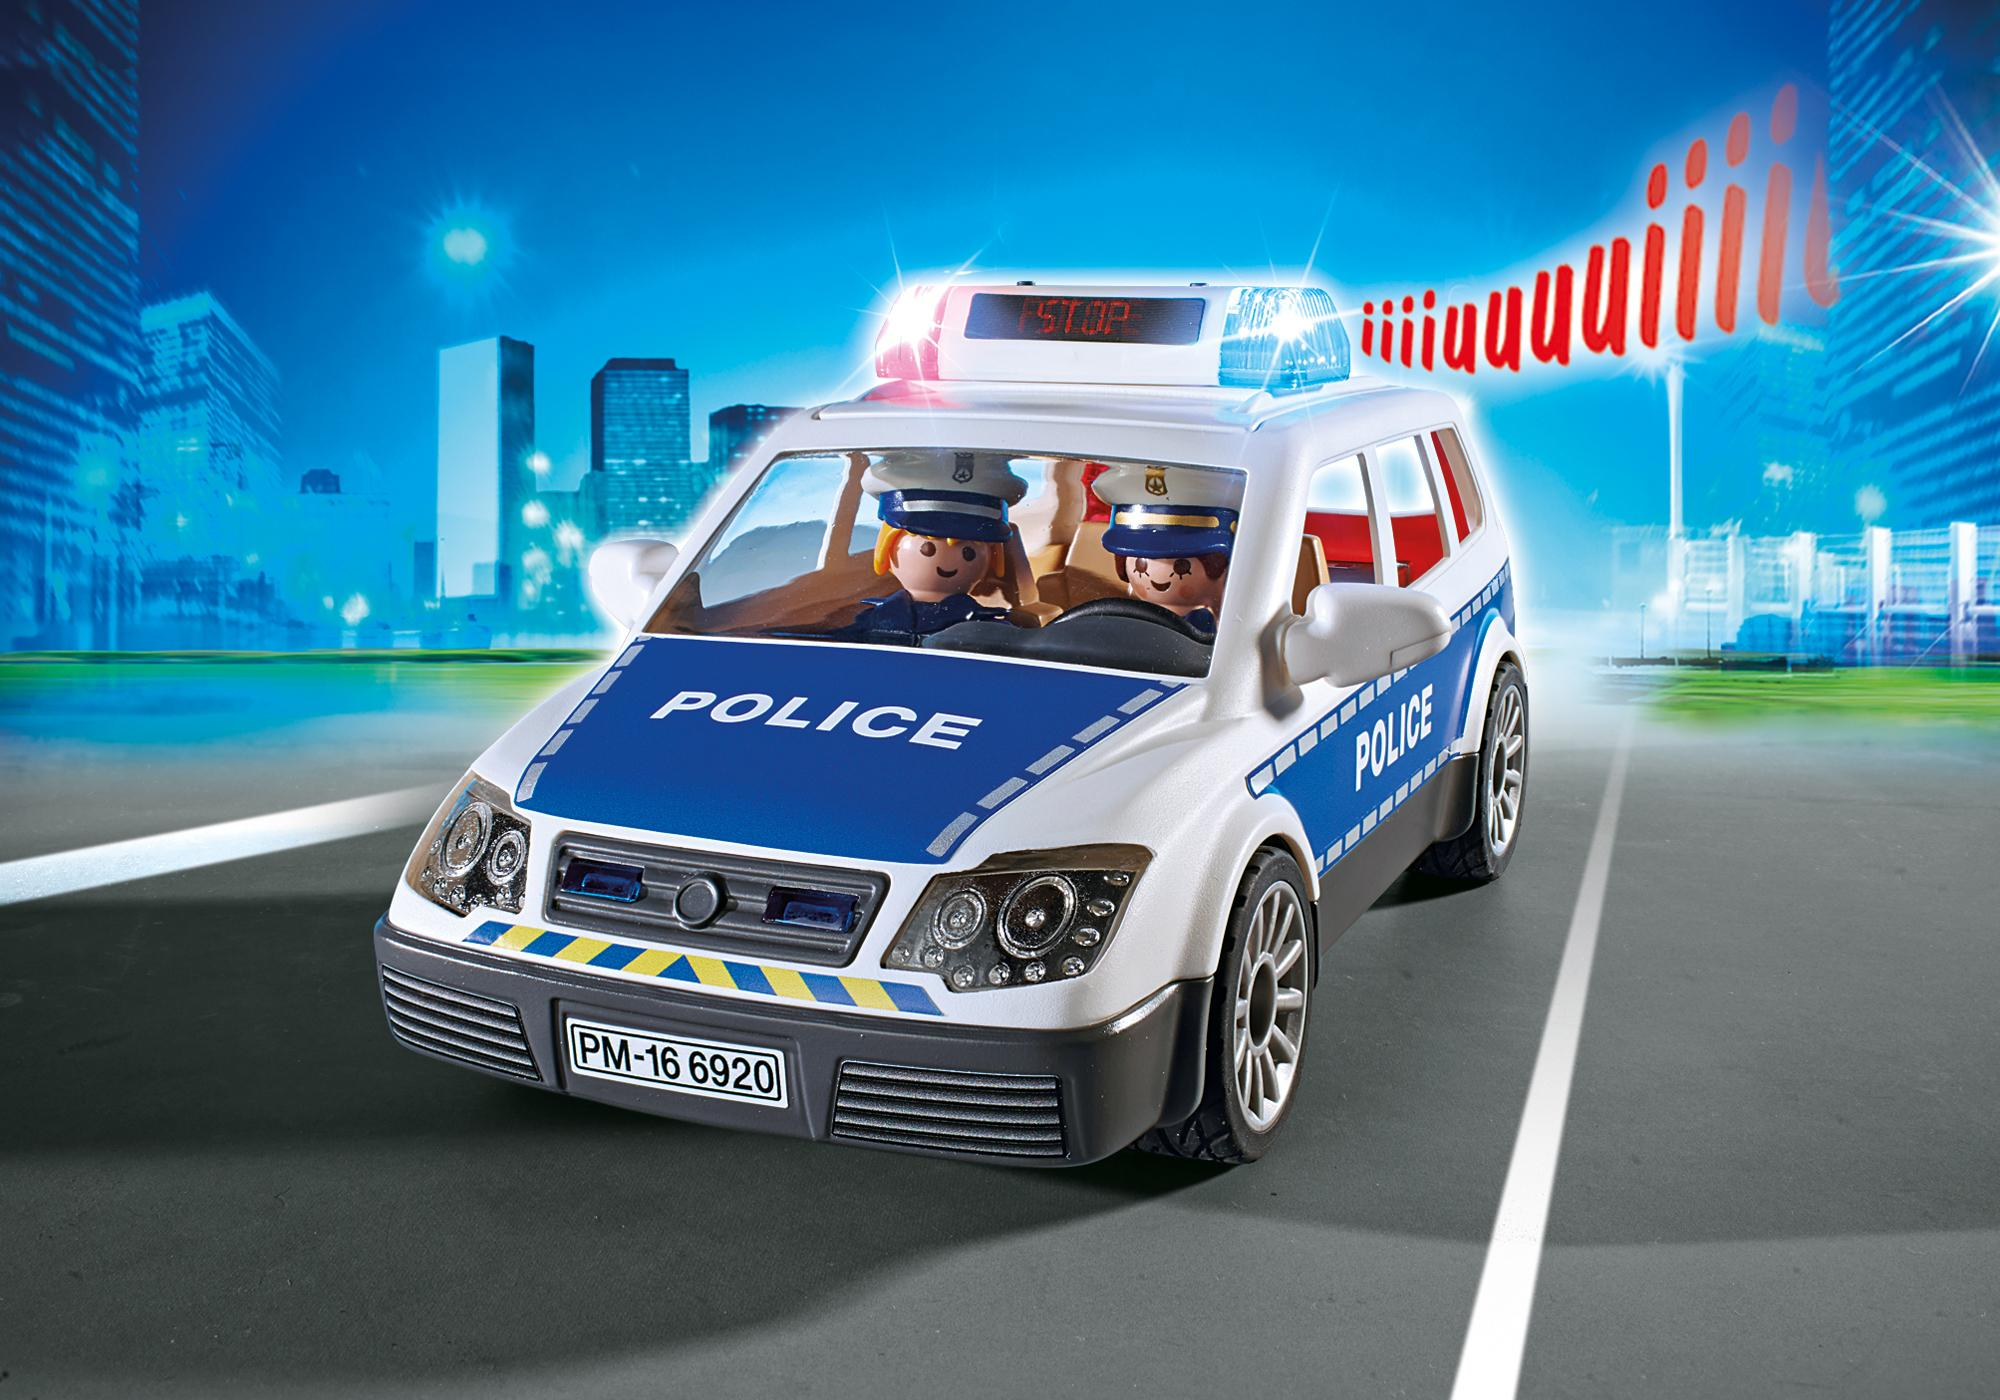 http://media.playmobil.com/i/playmobil/6920_product_extra2/Squad Car with Lights and Sound